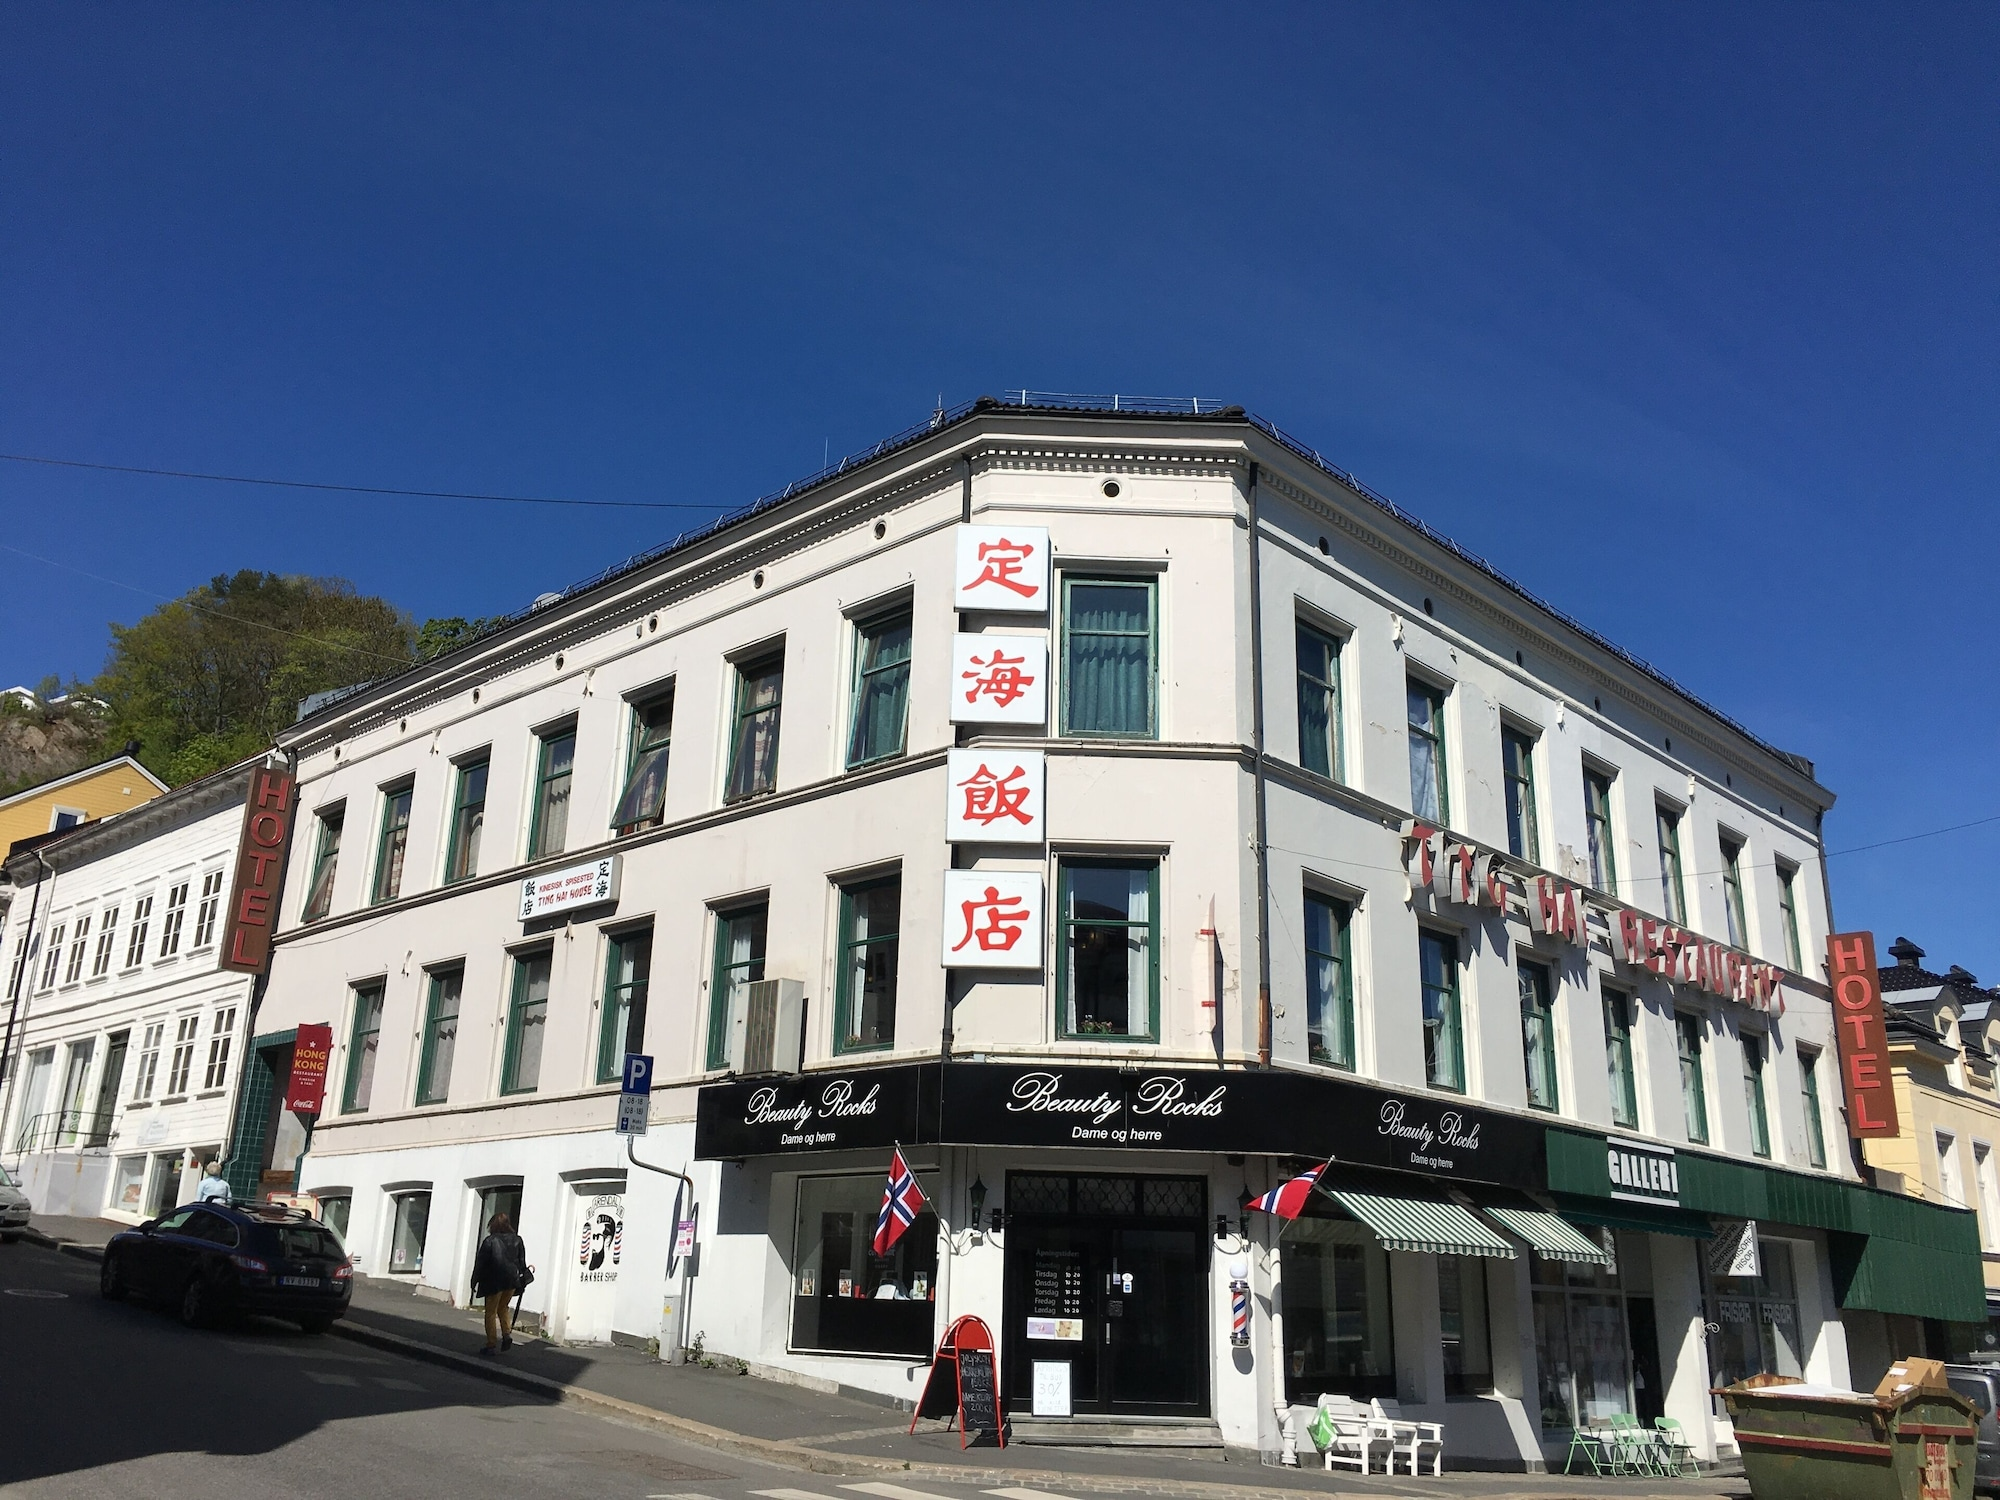 Lille Hotell, Arendal